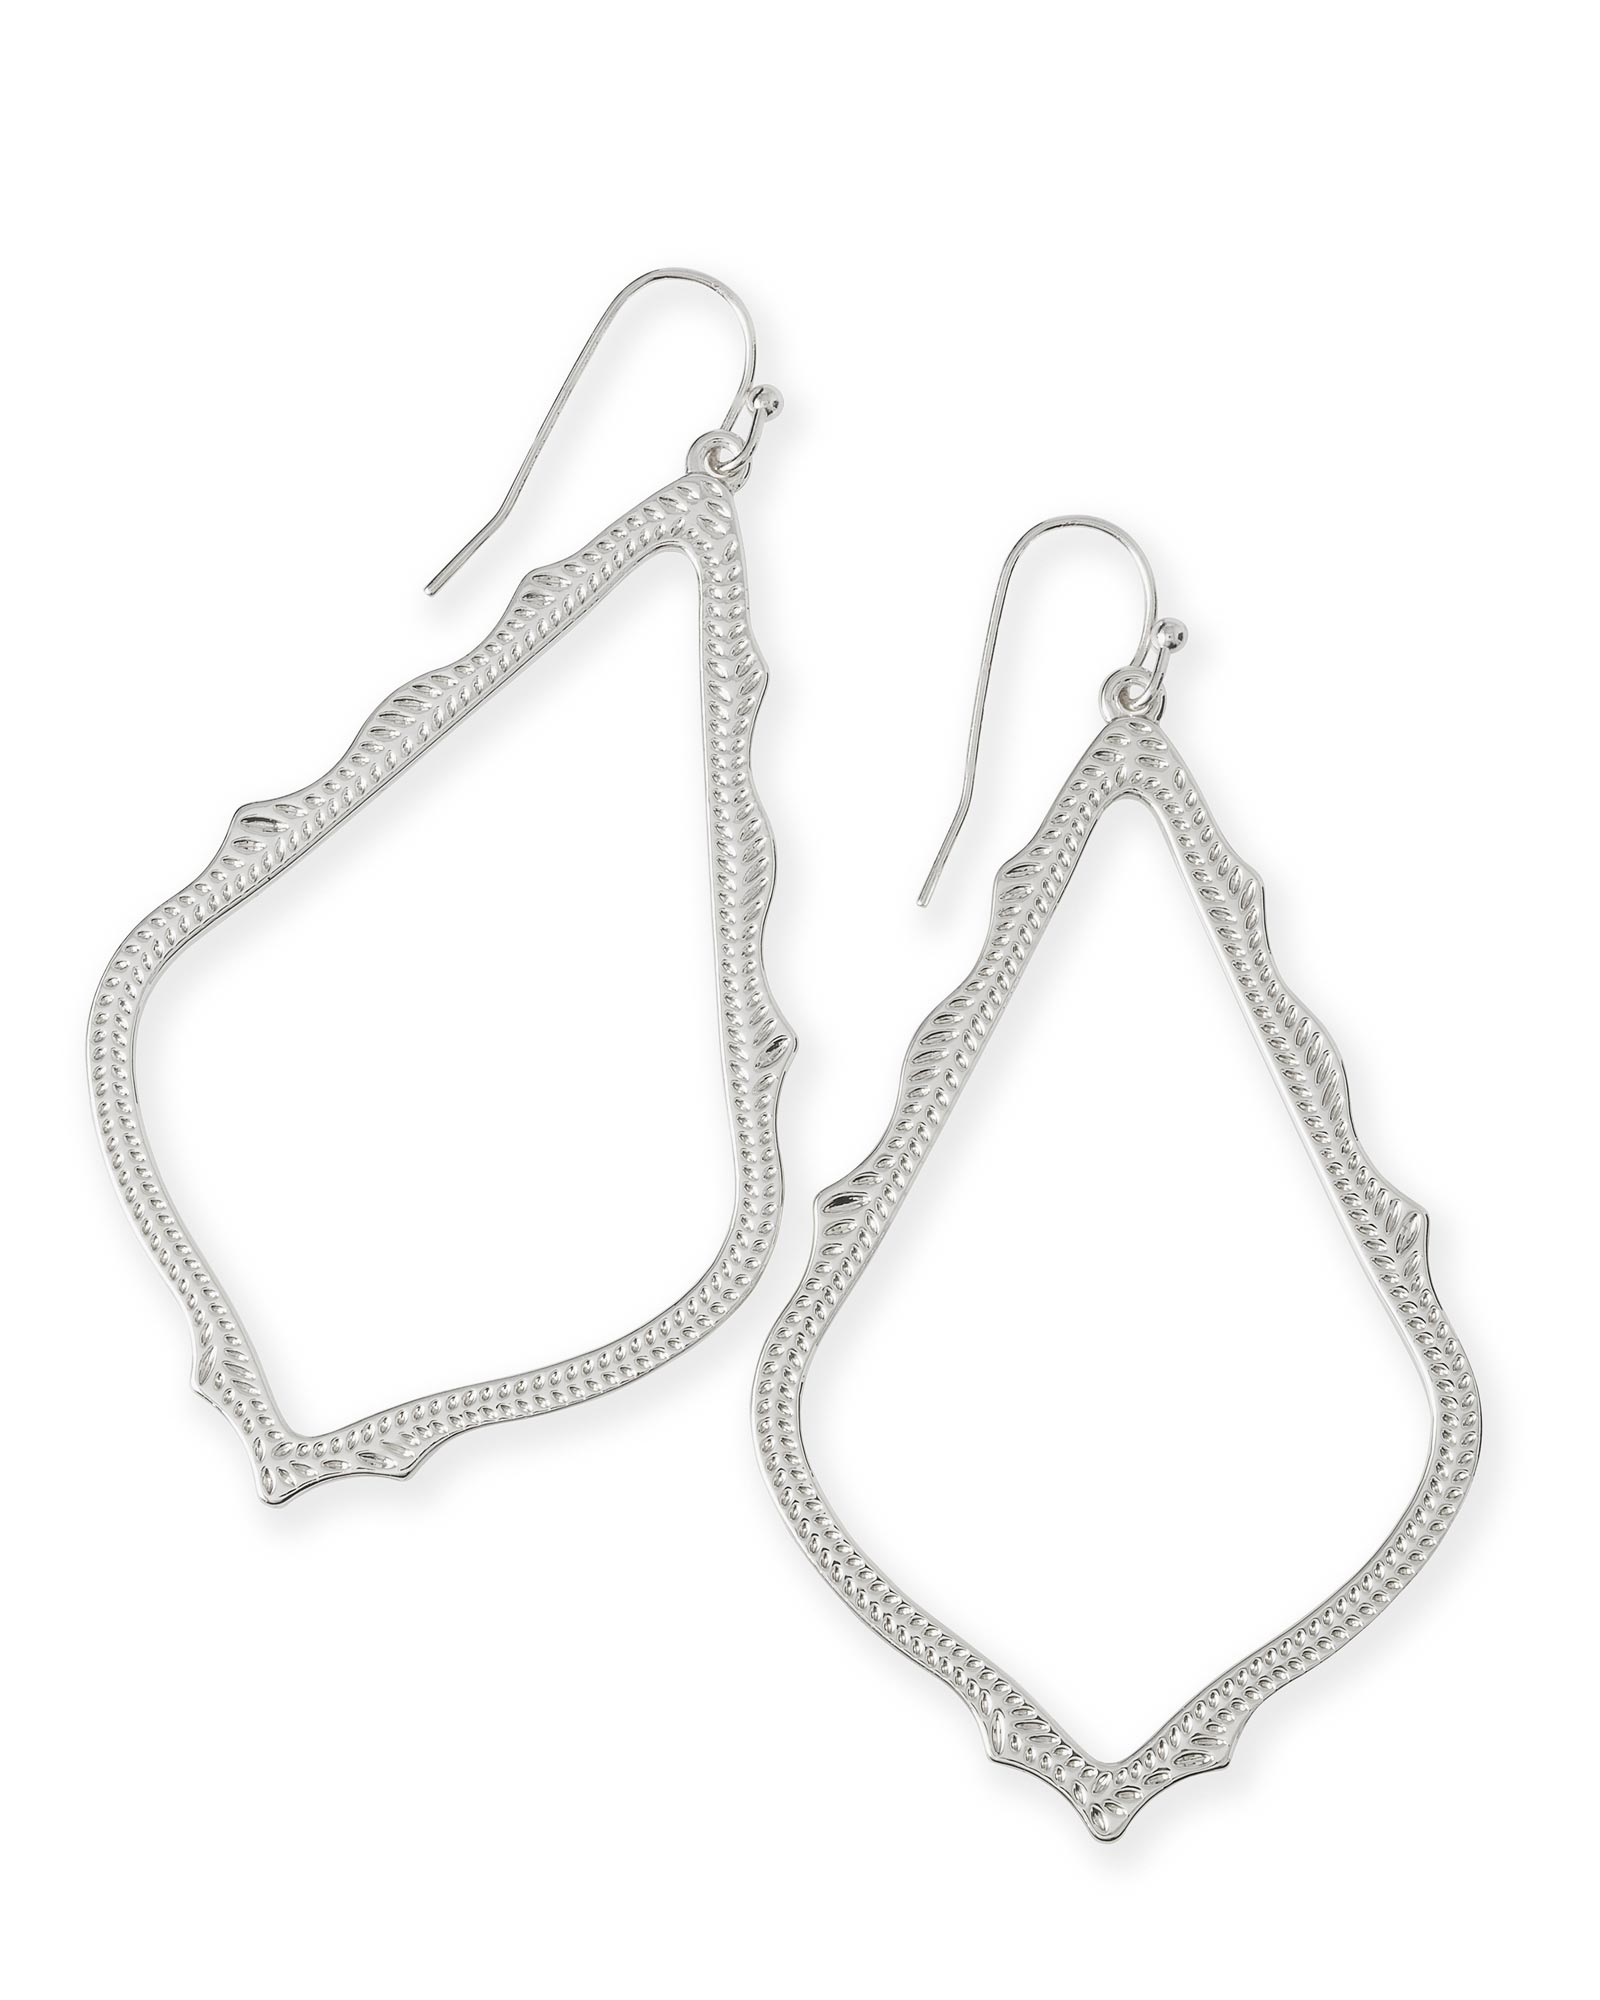 sliver glass collections products earrings featured sterling silver with oval roman shaped